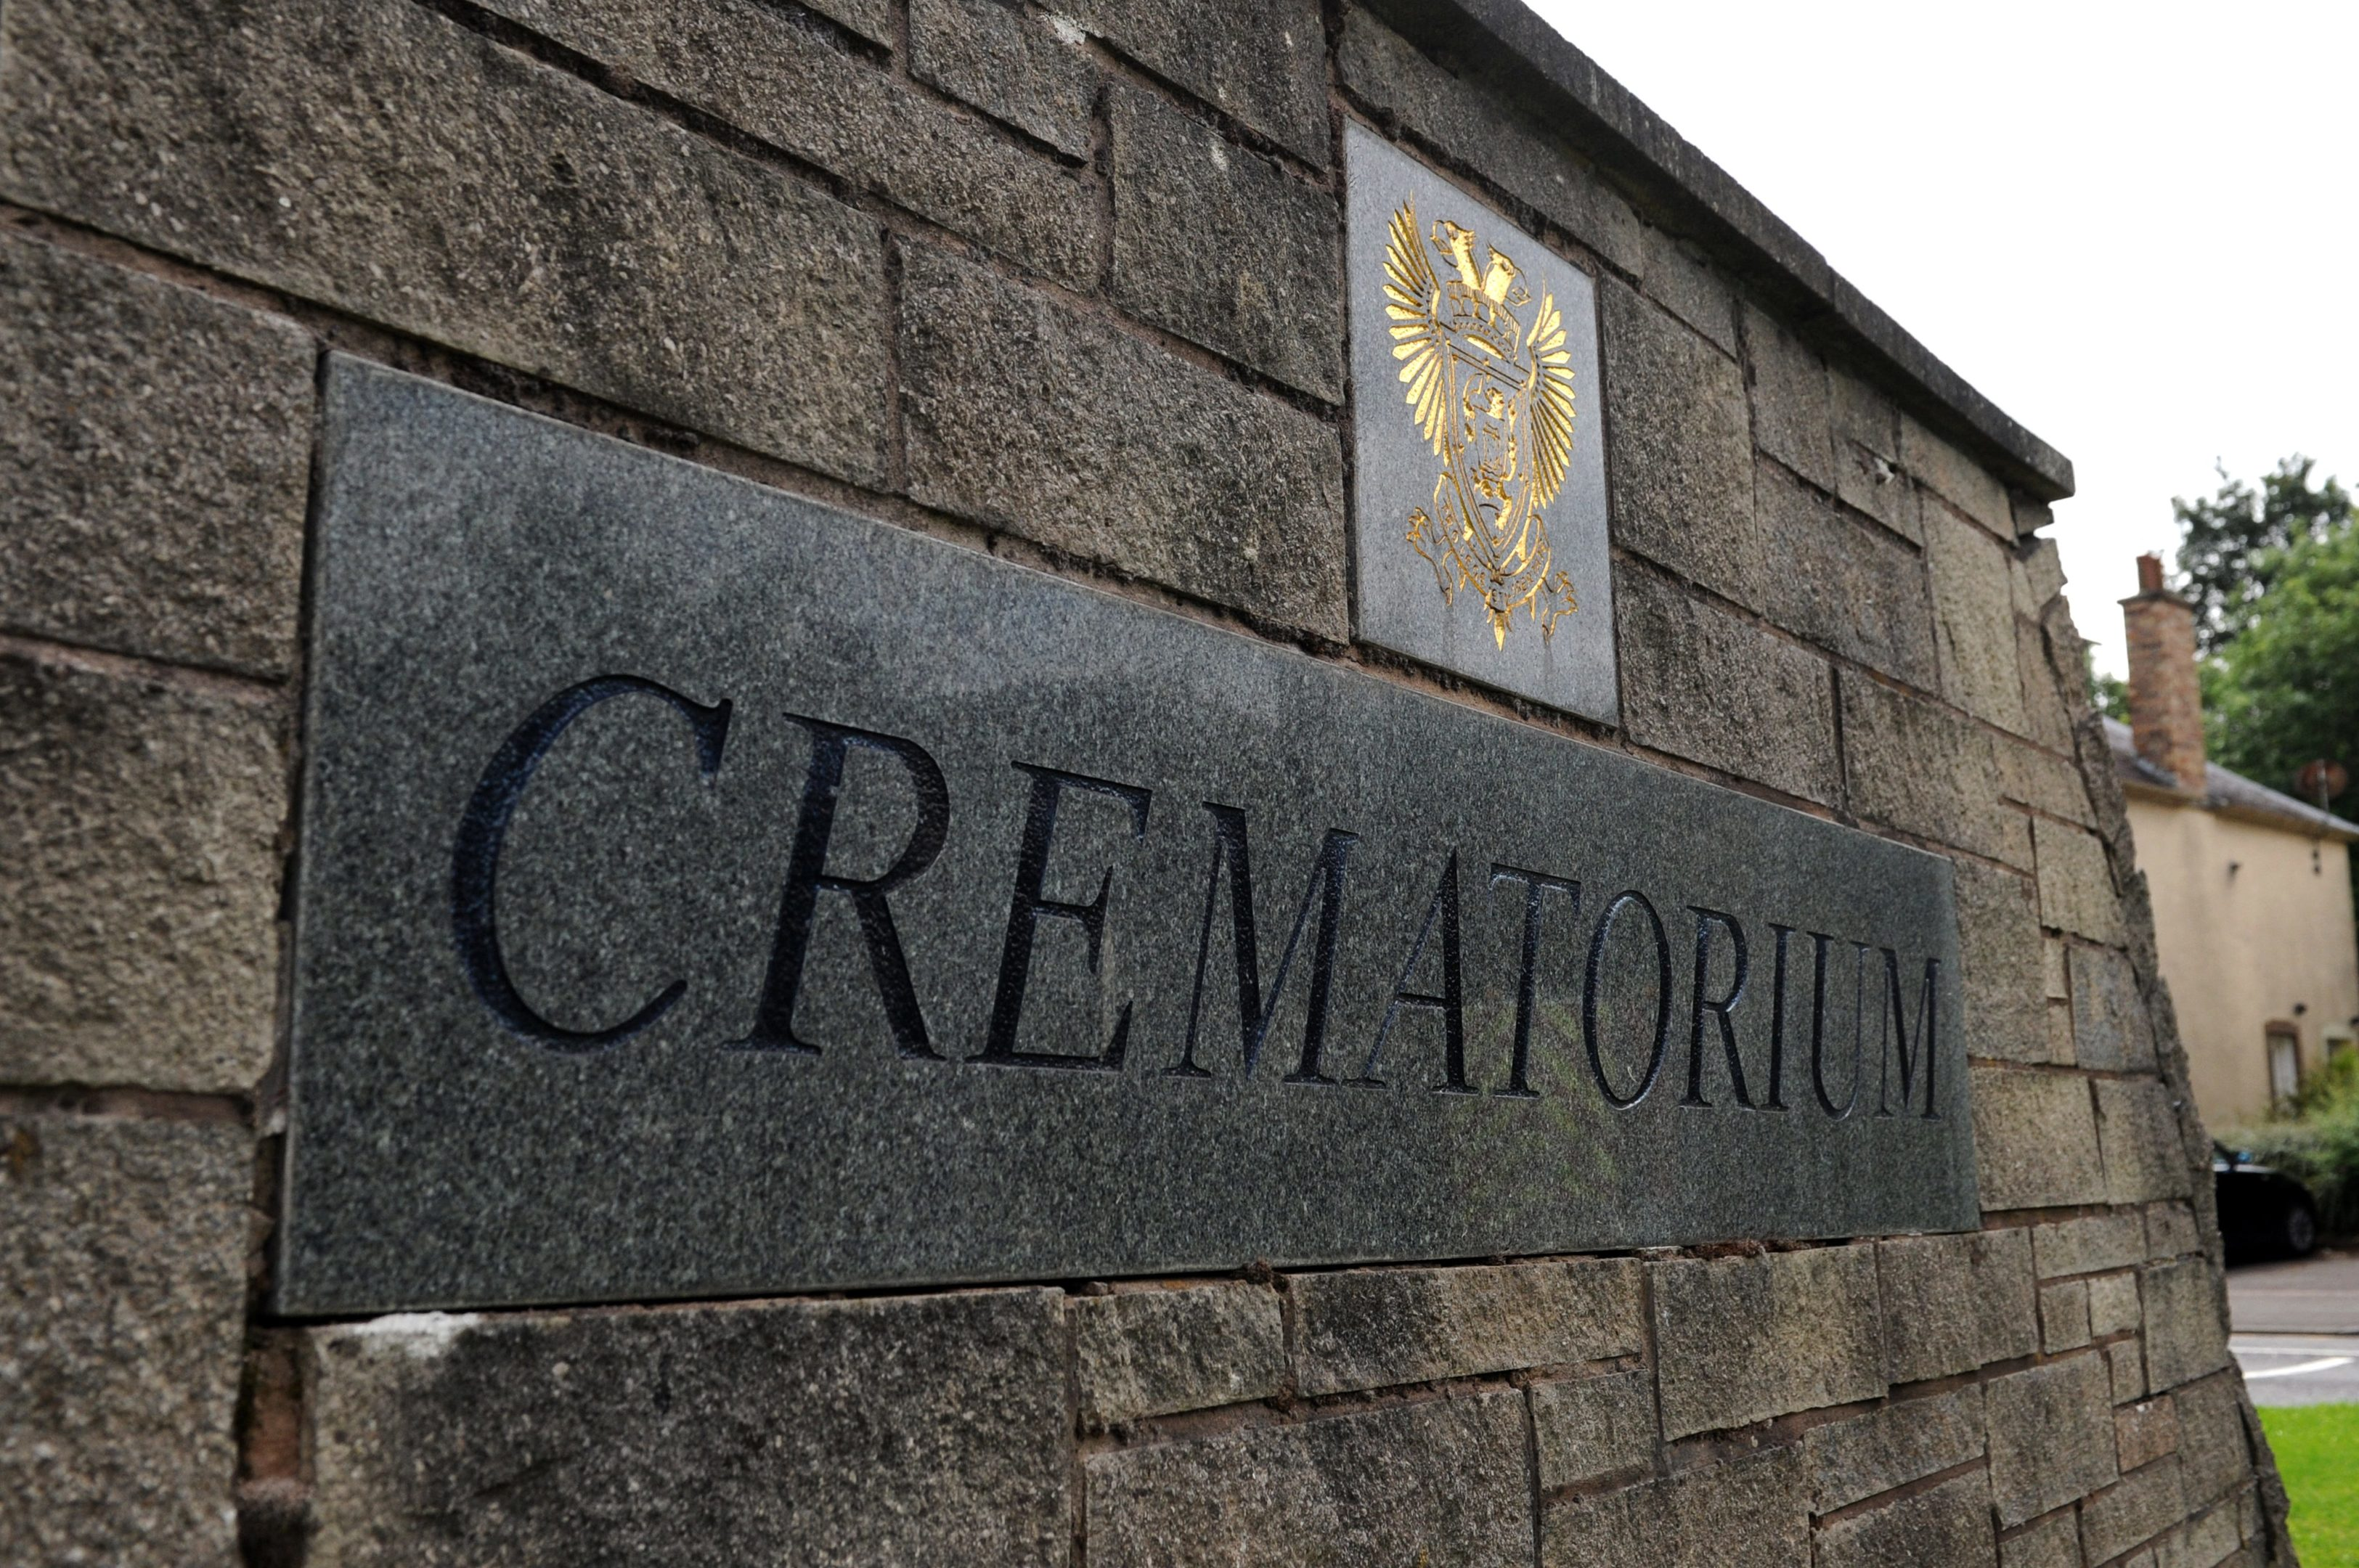 Perth Crematorium.